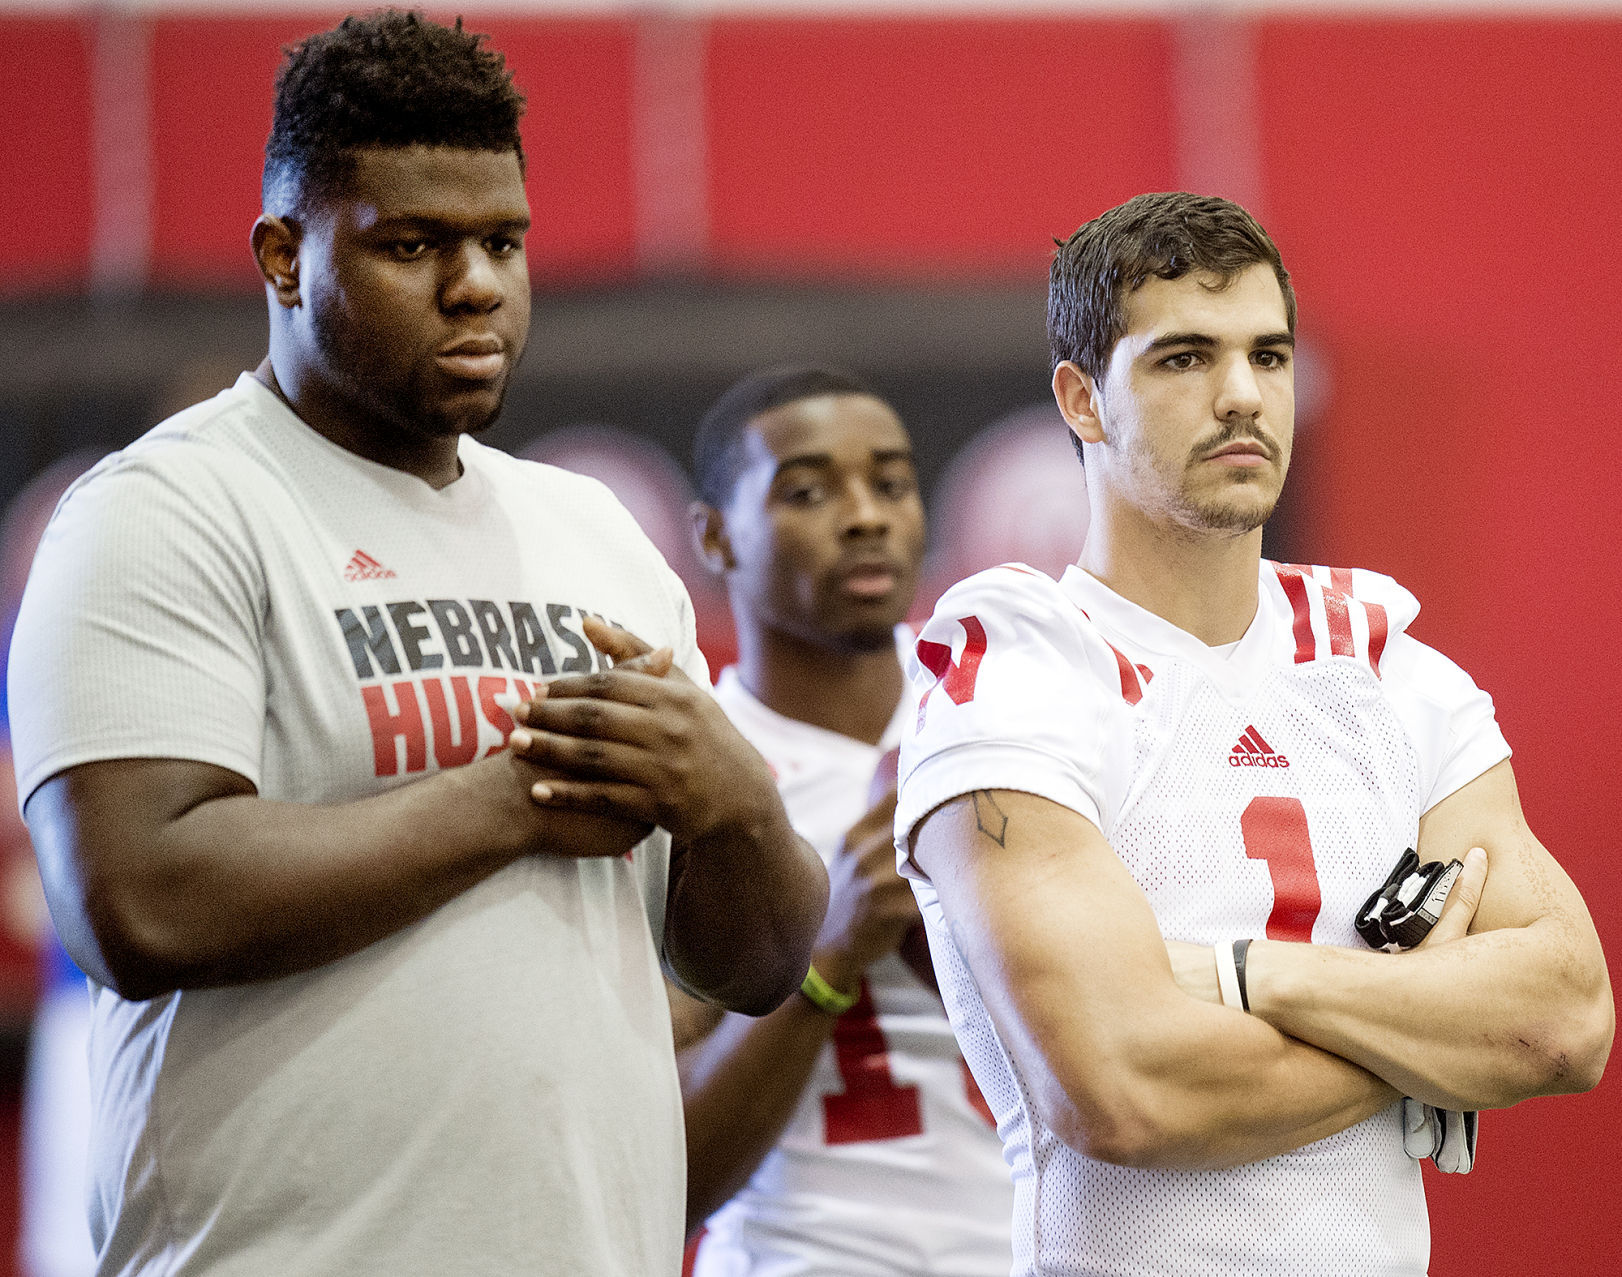 Nebraska Fall Football Practice, 8.11.15